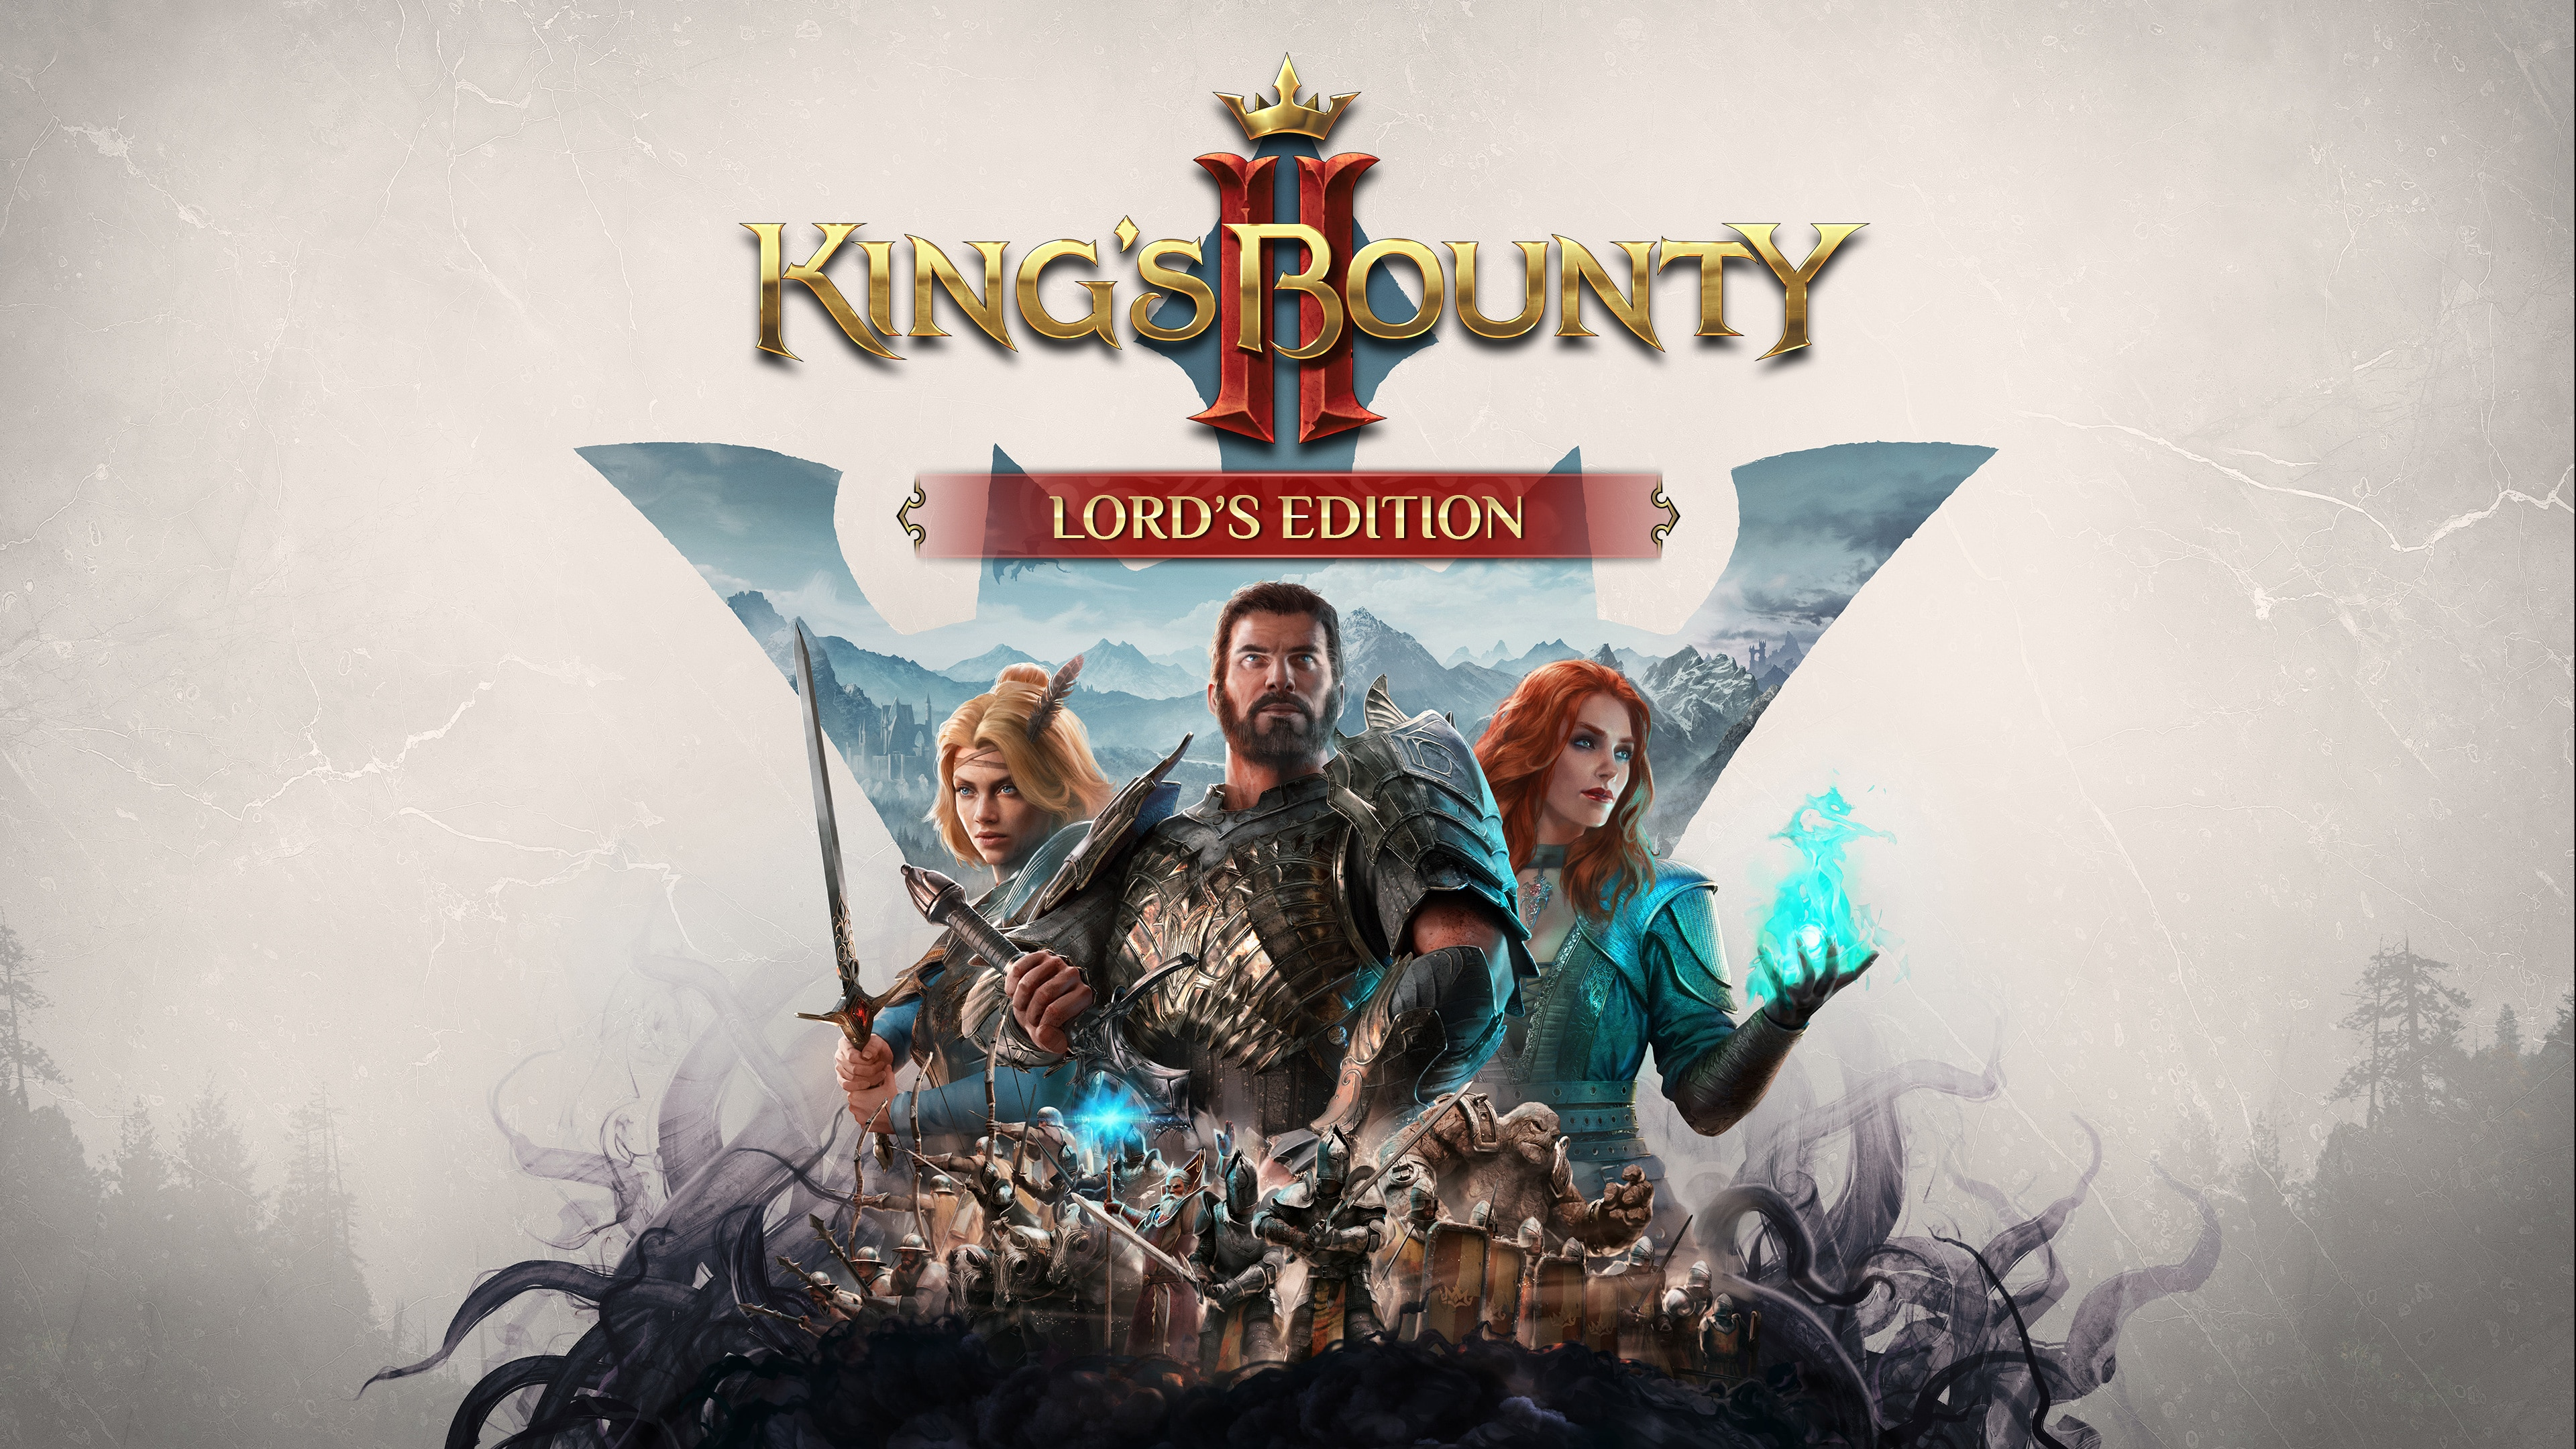 Lord's Edition